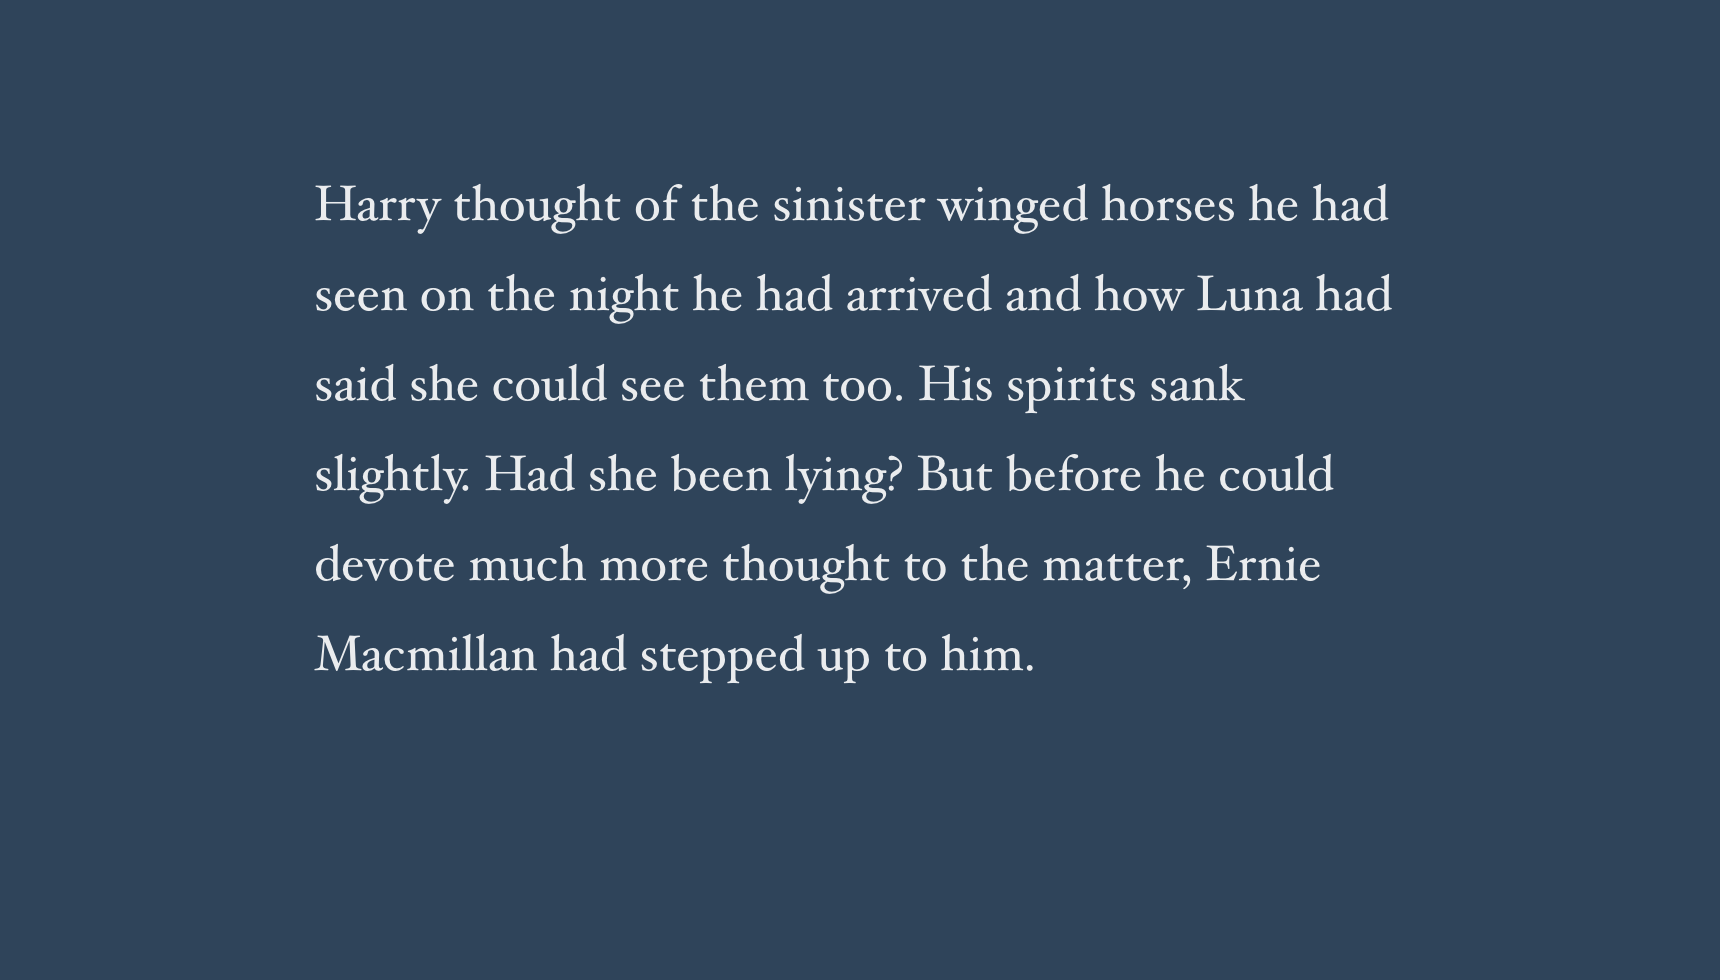 Harry thought of the sinister winged horses he had seen on the night he had arrived and how Luna had said she could see them too. His spirits sank slightly. Had she been lying? But before he could devote much more thought to the matter, Ernie Macmillan had stepped up to him.